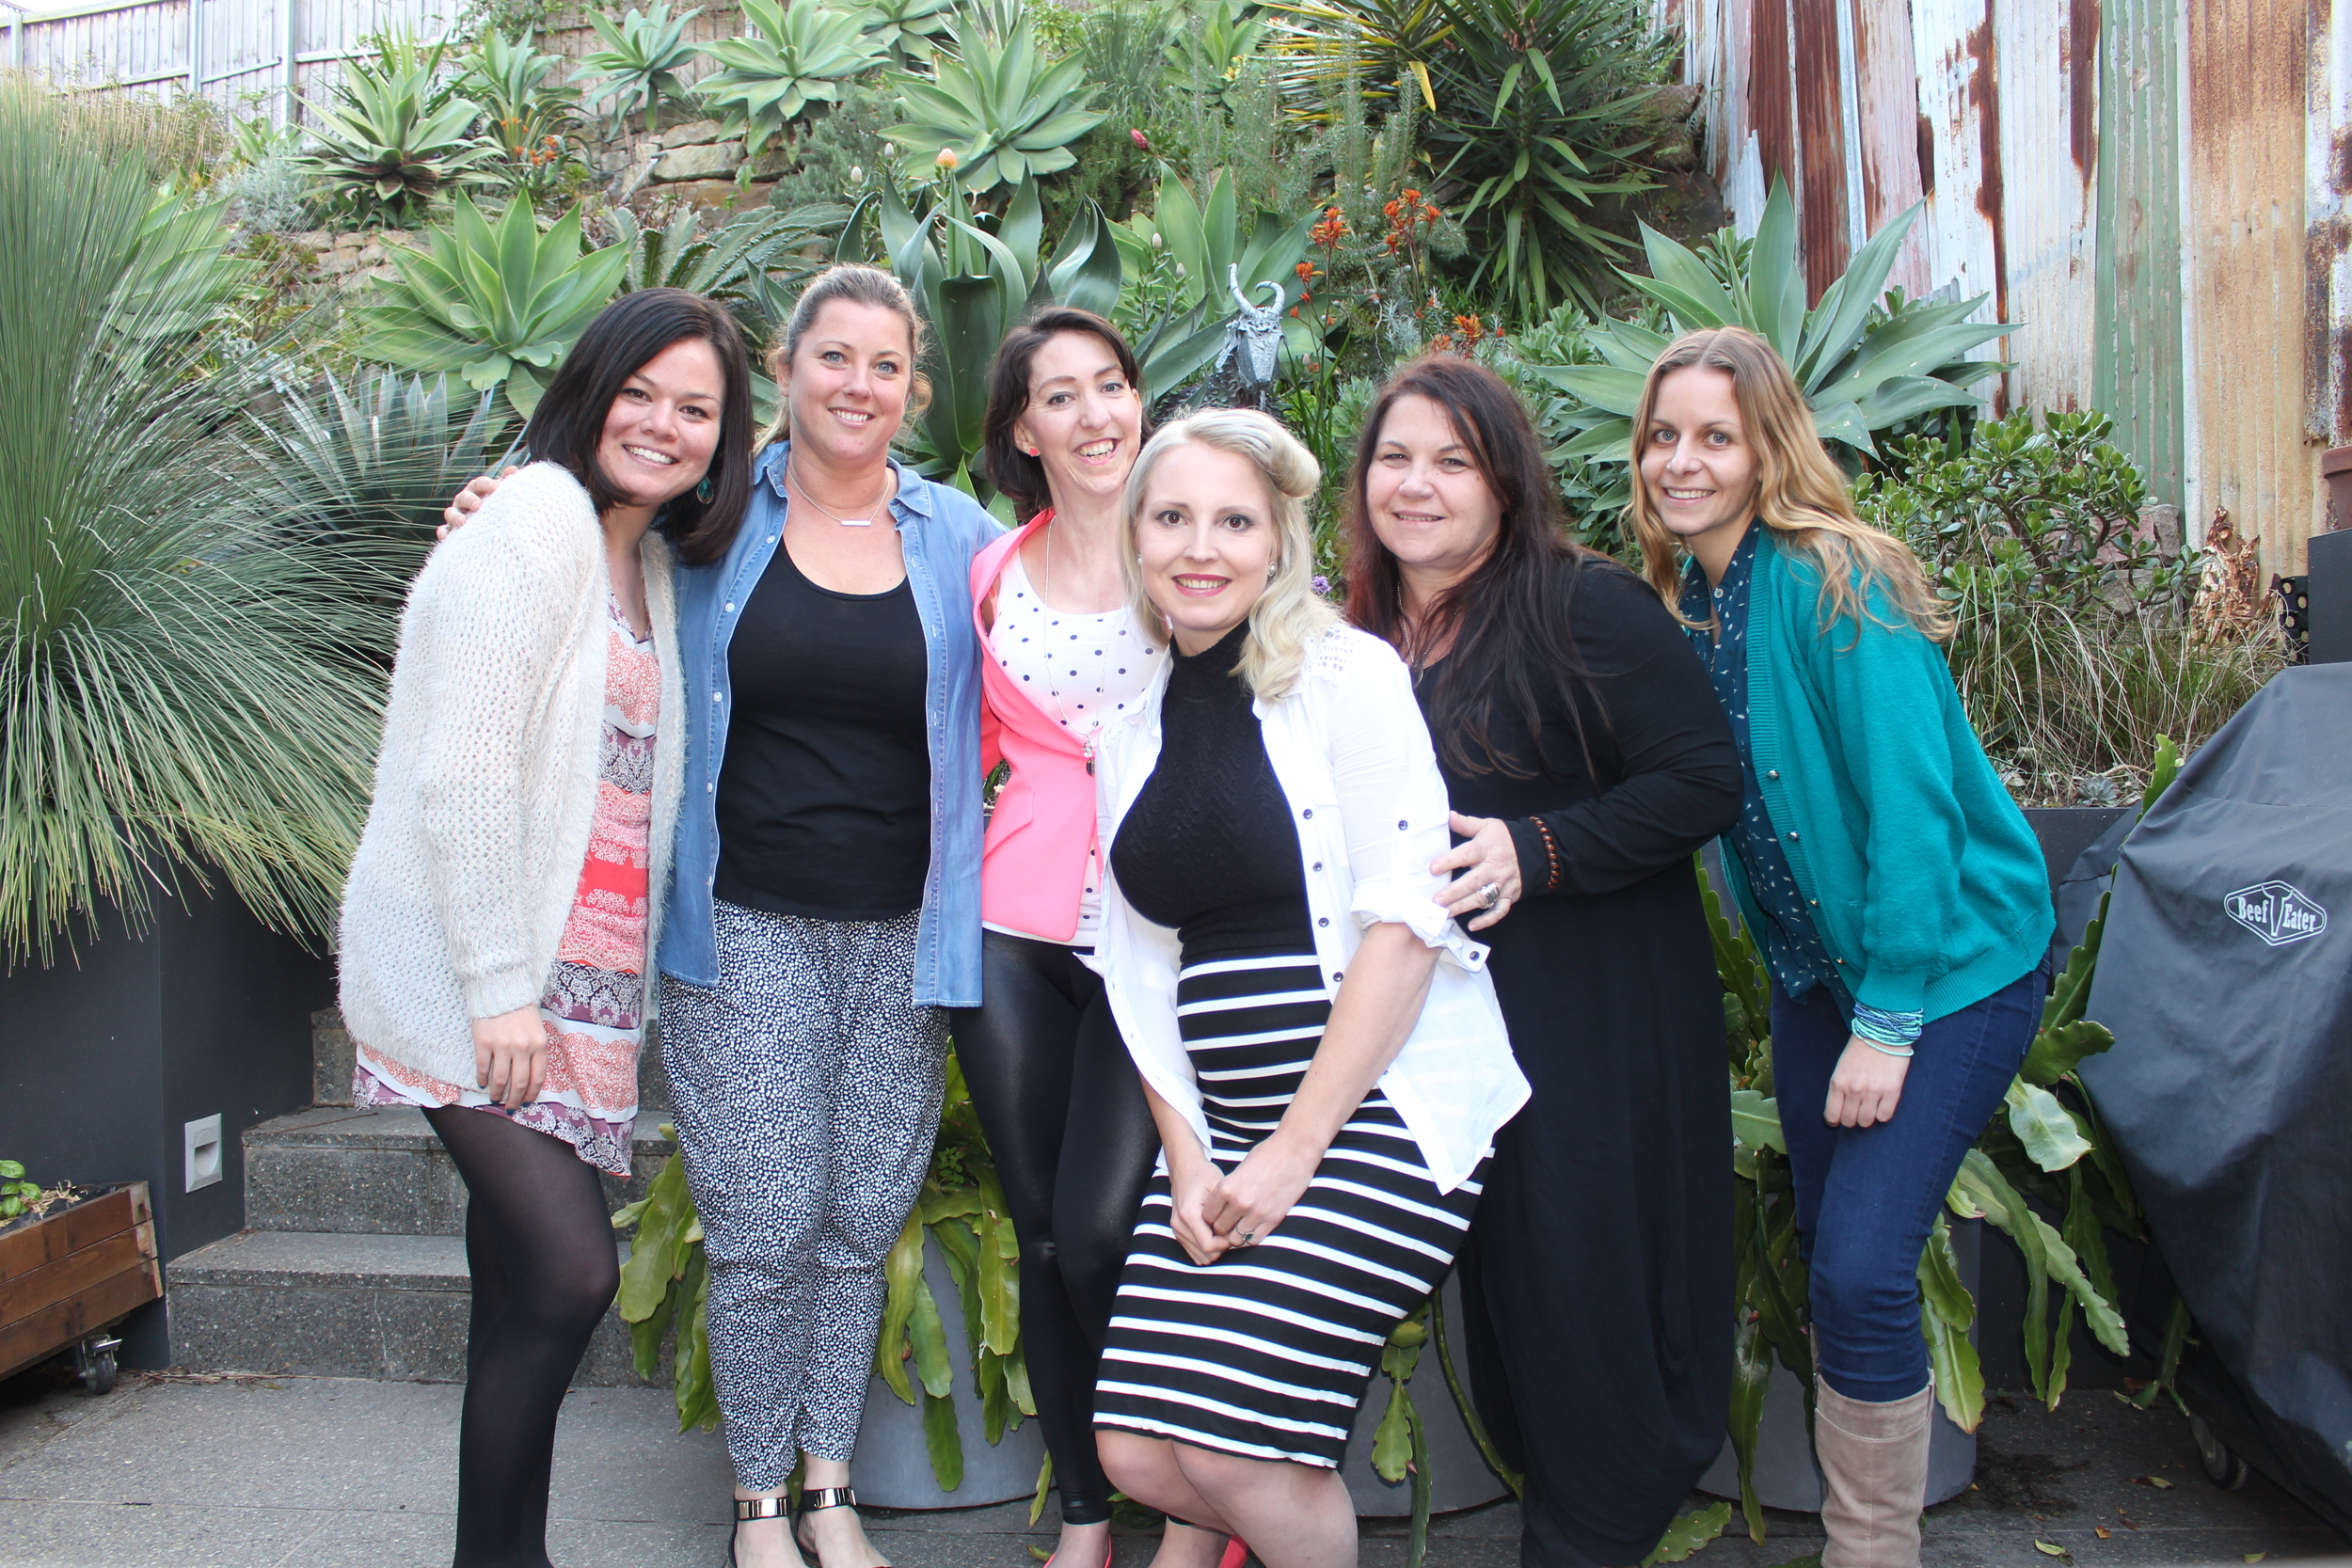 Tess Philip, Rebecca Grainger from The Edit Hub, Me, Sarah Liddle, Dr. Cate Cole, and Heather Lynn at 'The Art of Business and The Craft of Coaching' Workshop in Sydney.  Photo Credit: Sarah Liddle